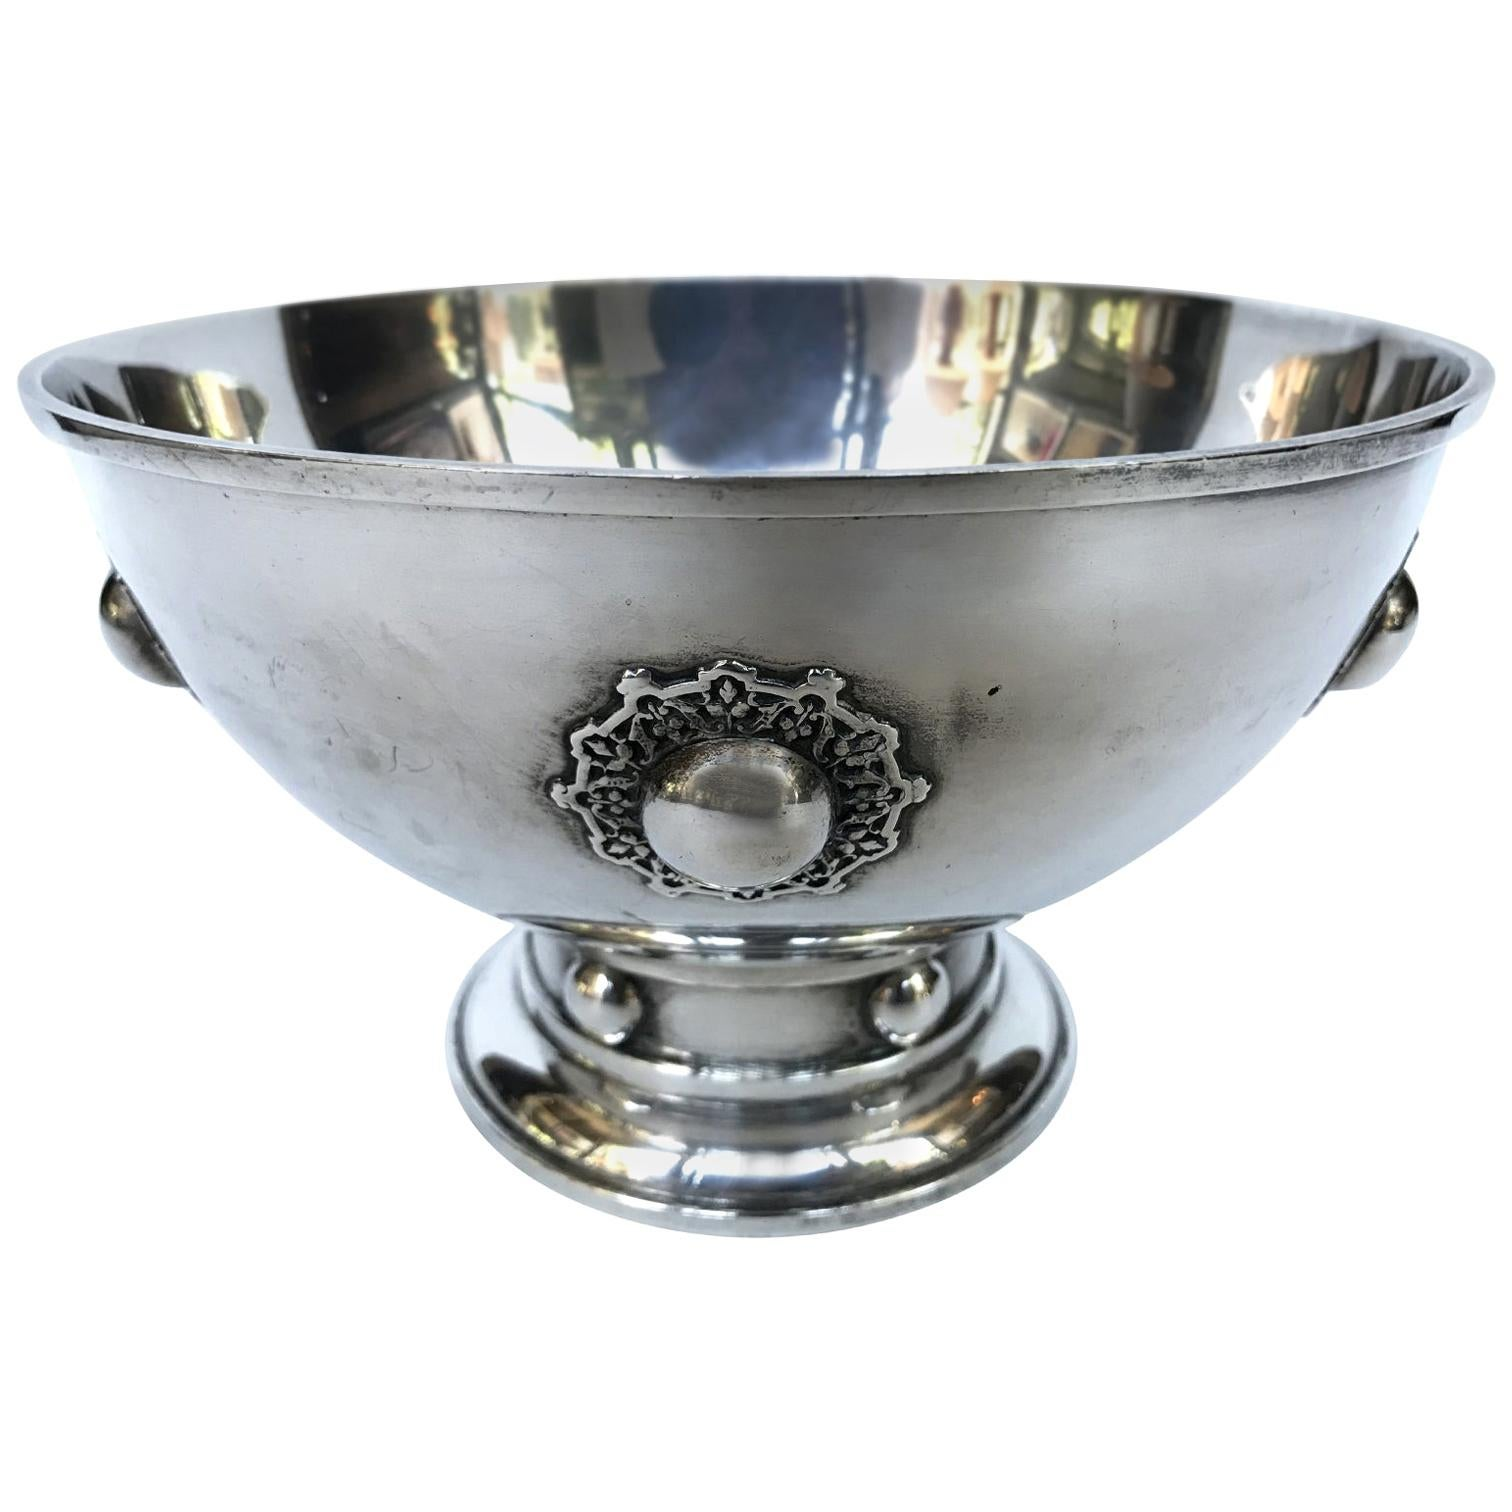 1920s Decorative Hawkes Sterling Silver Bowl by O. R. Dunn